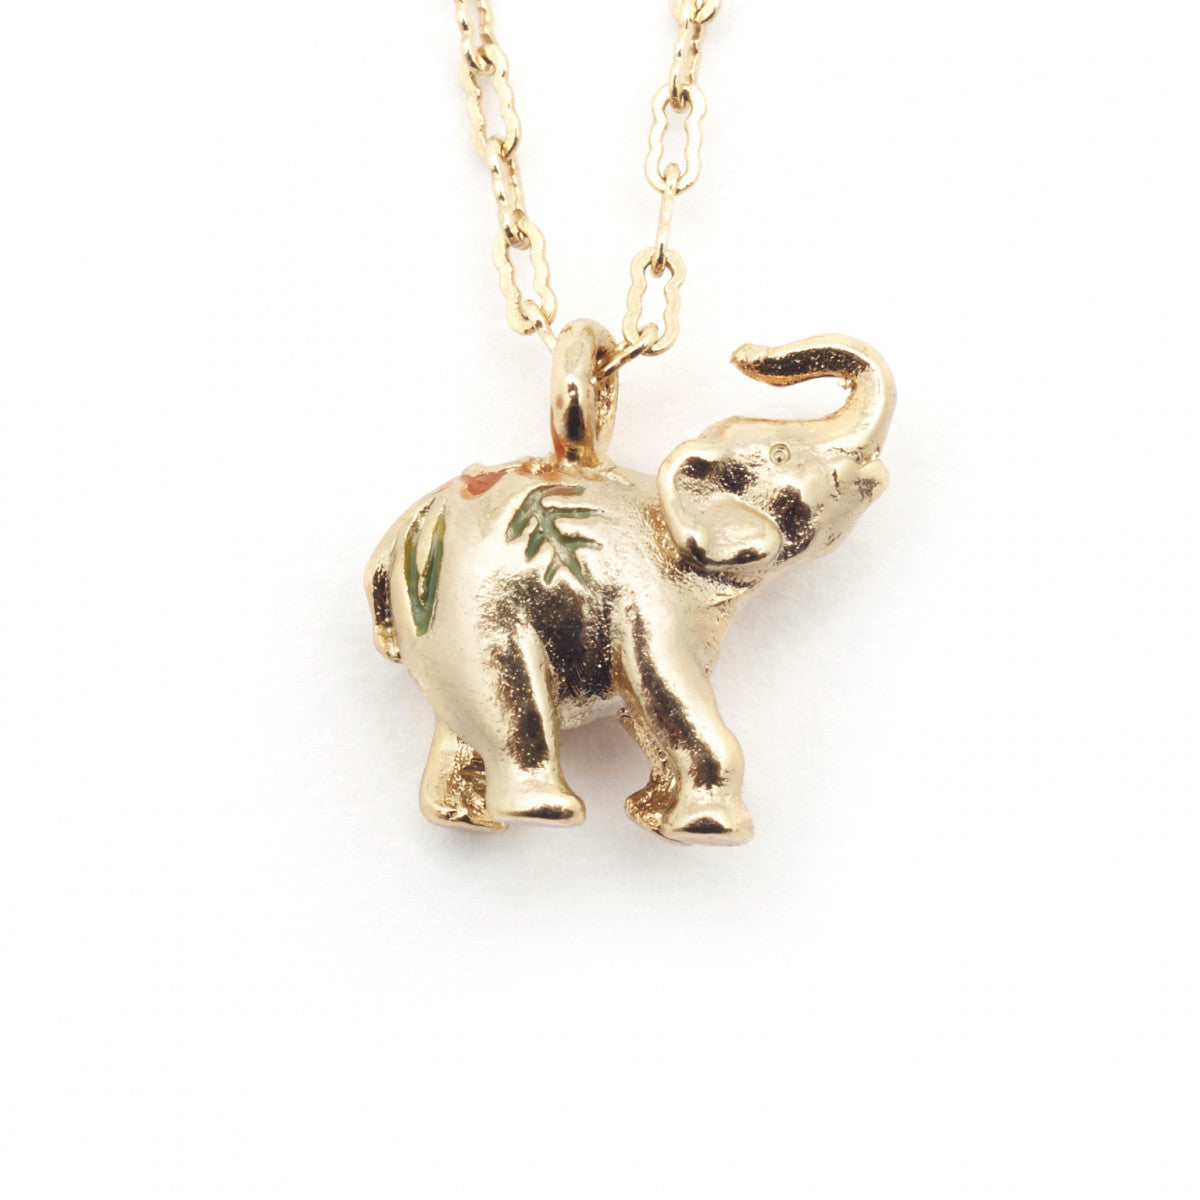 Bill Skinner Elephant Necklace